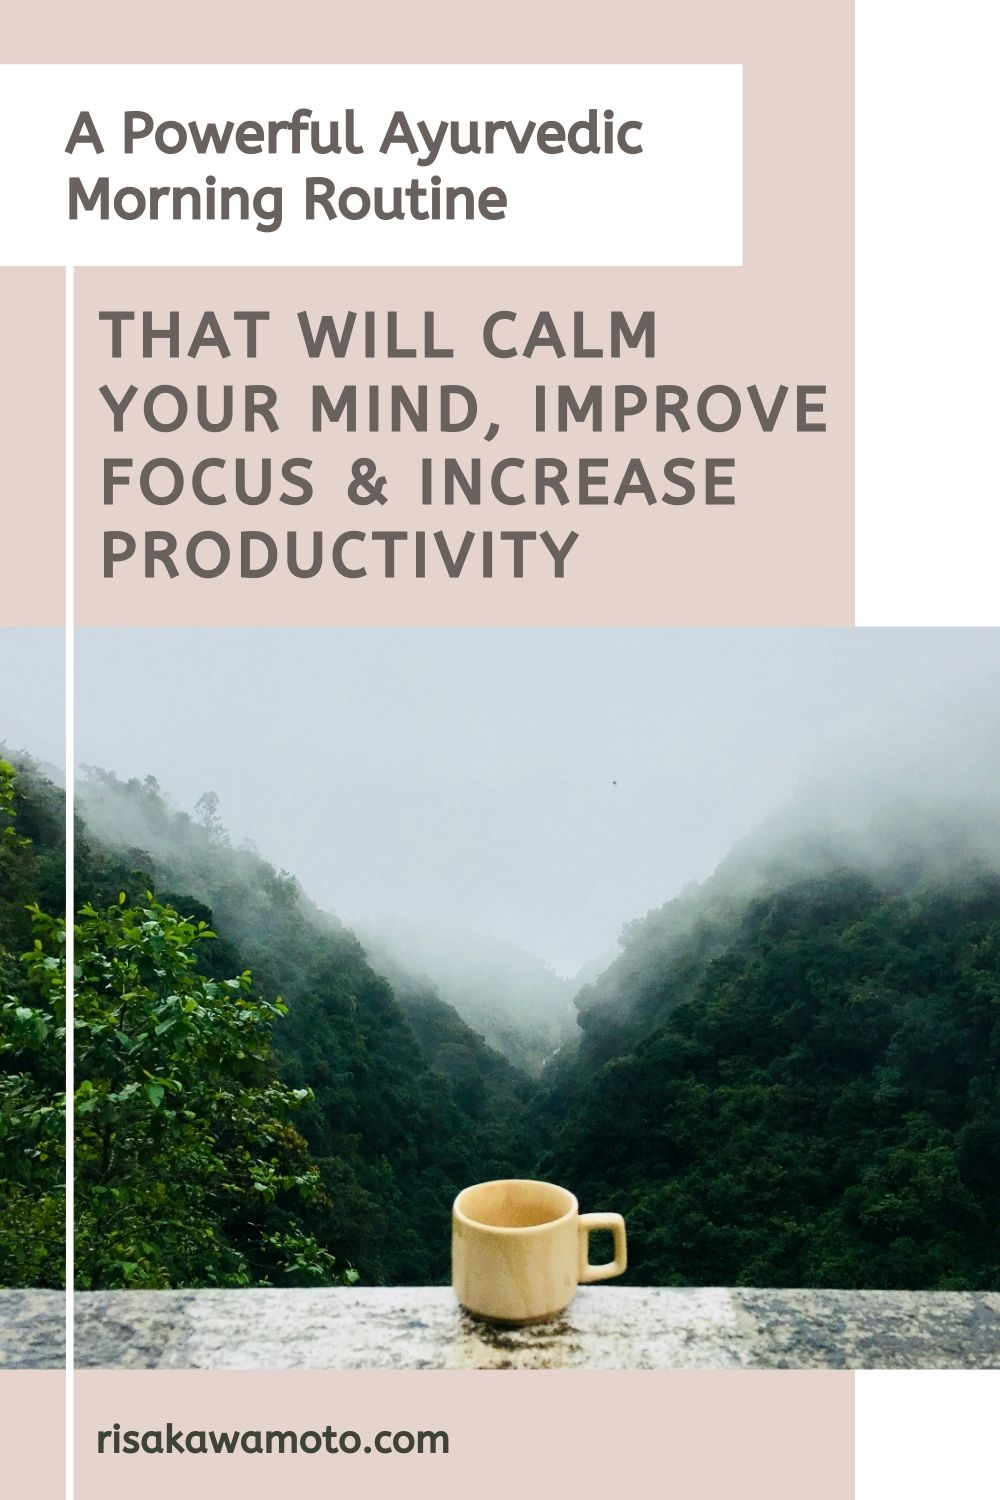 A Powerful Morning Routine that will Calm Your Mind Improve Focus & Increase Productivity